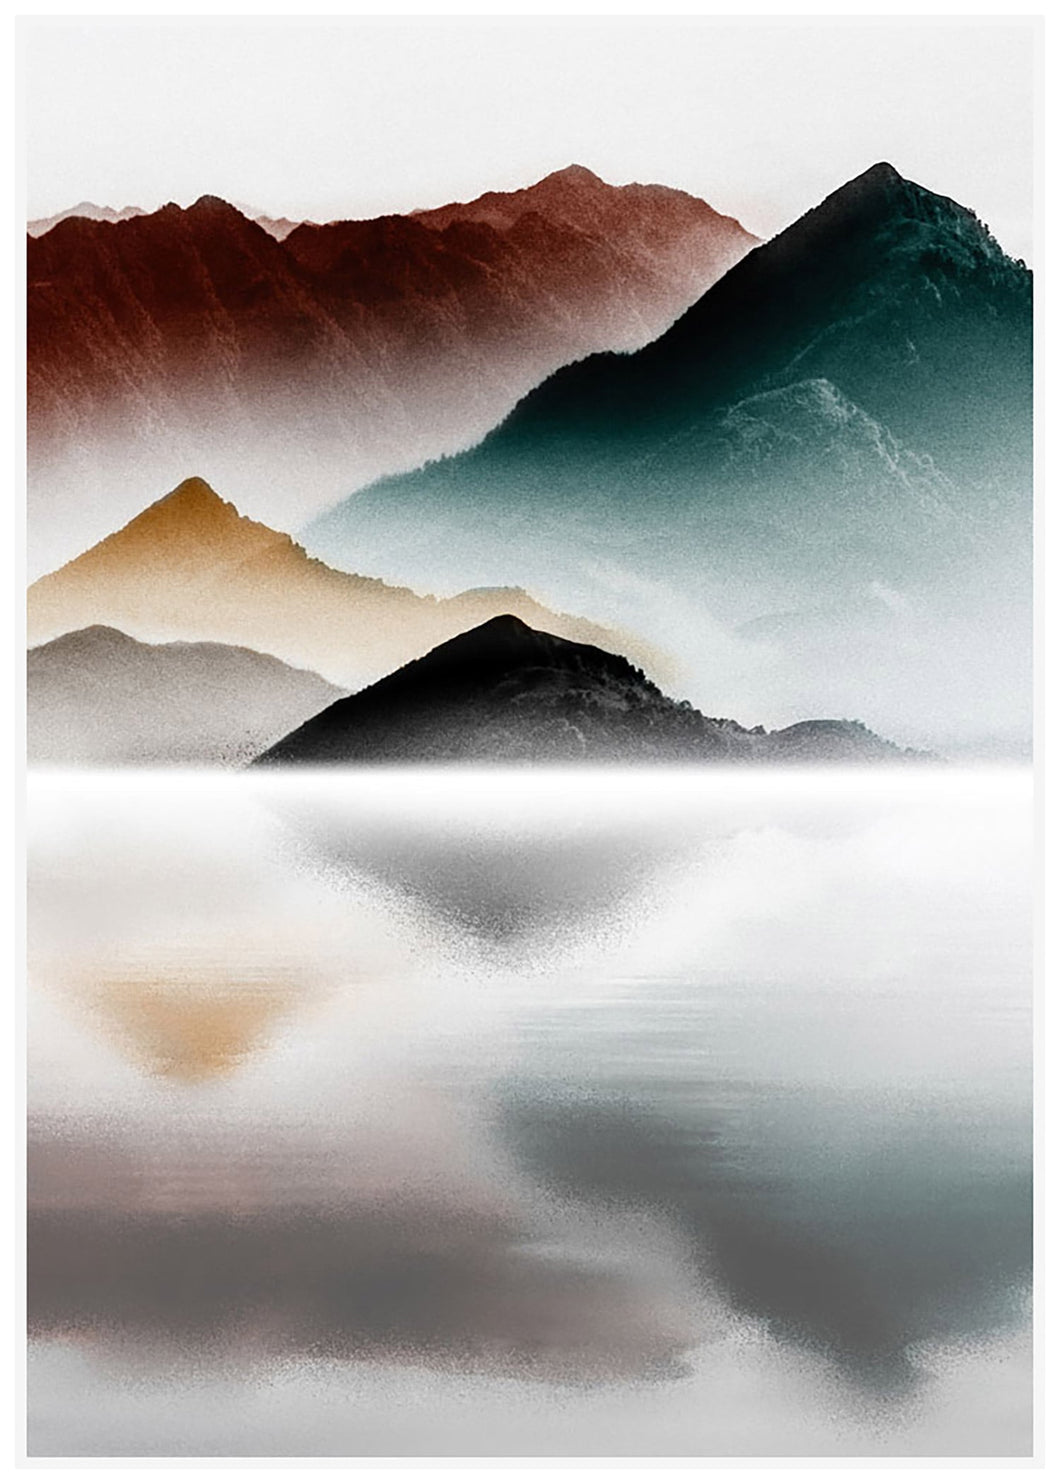 Canvas Print - Reflective Peaks - Rosie's Gifts and Homeware - Gift Shop NZ